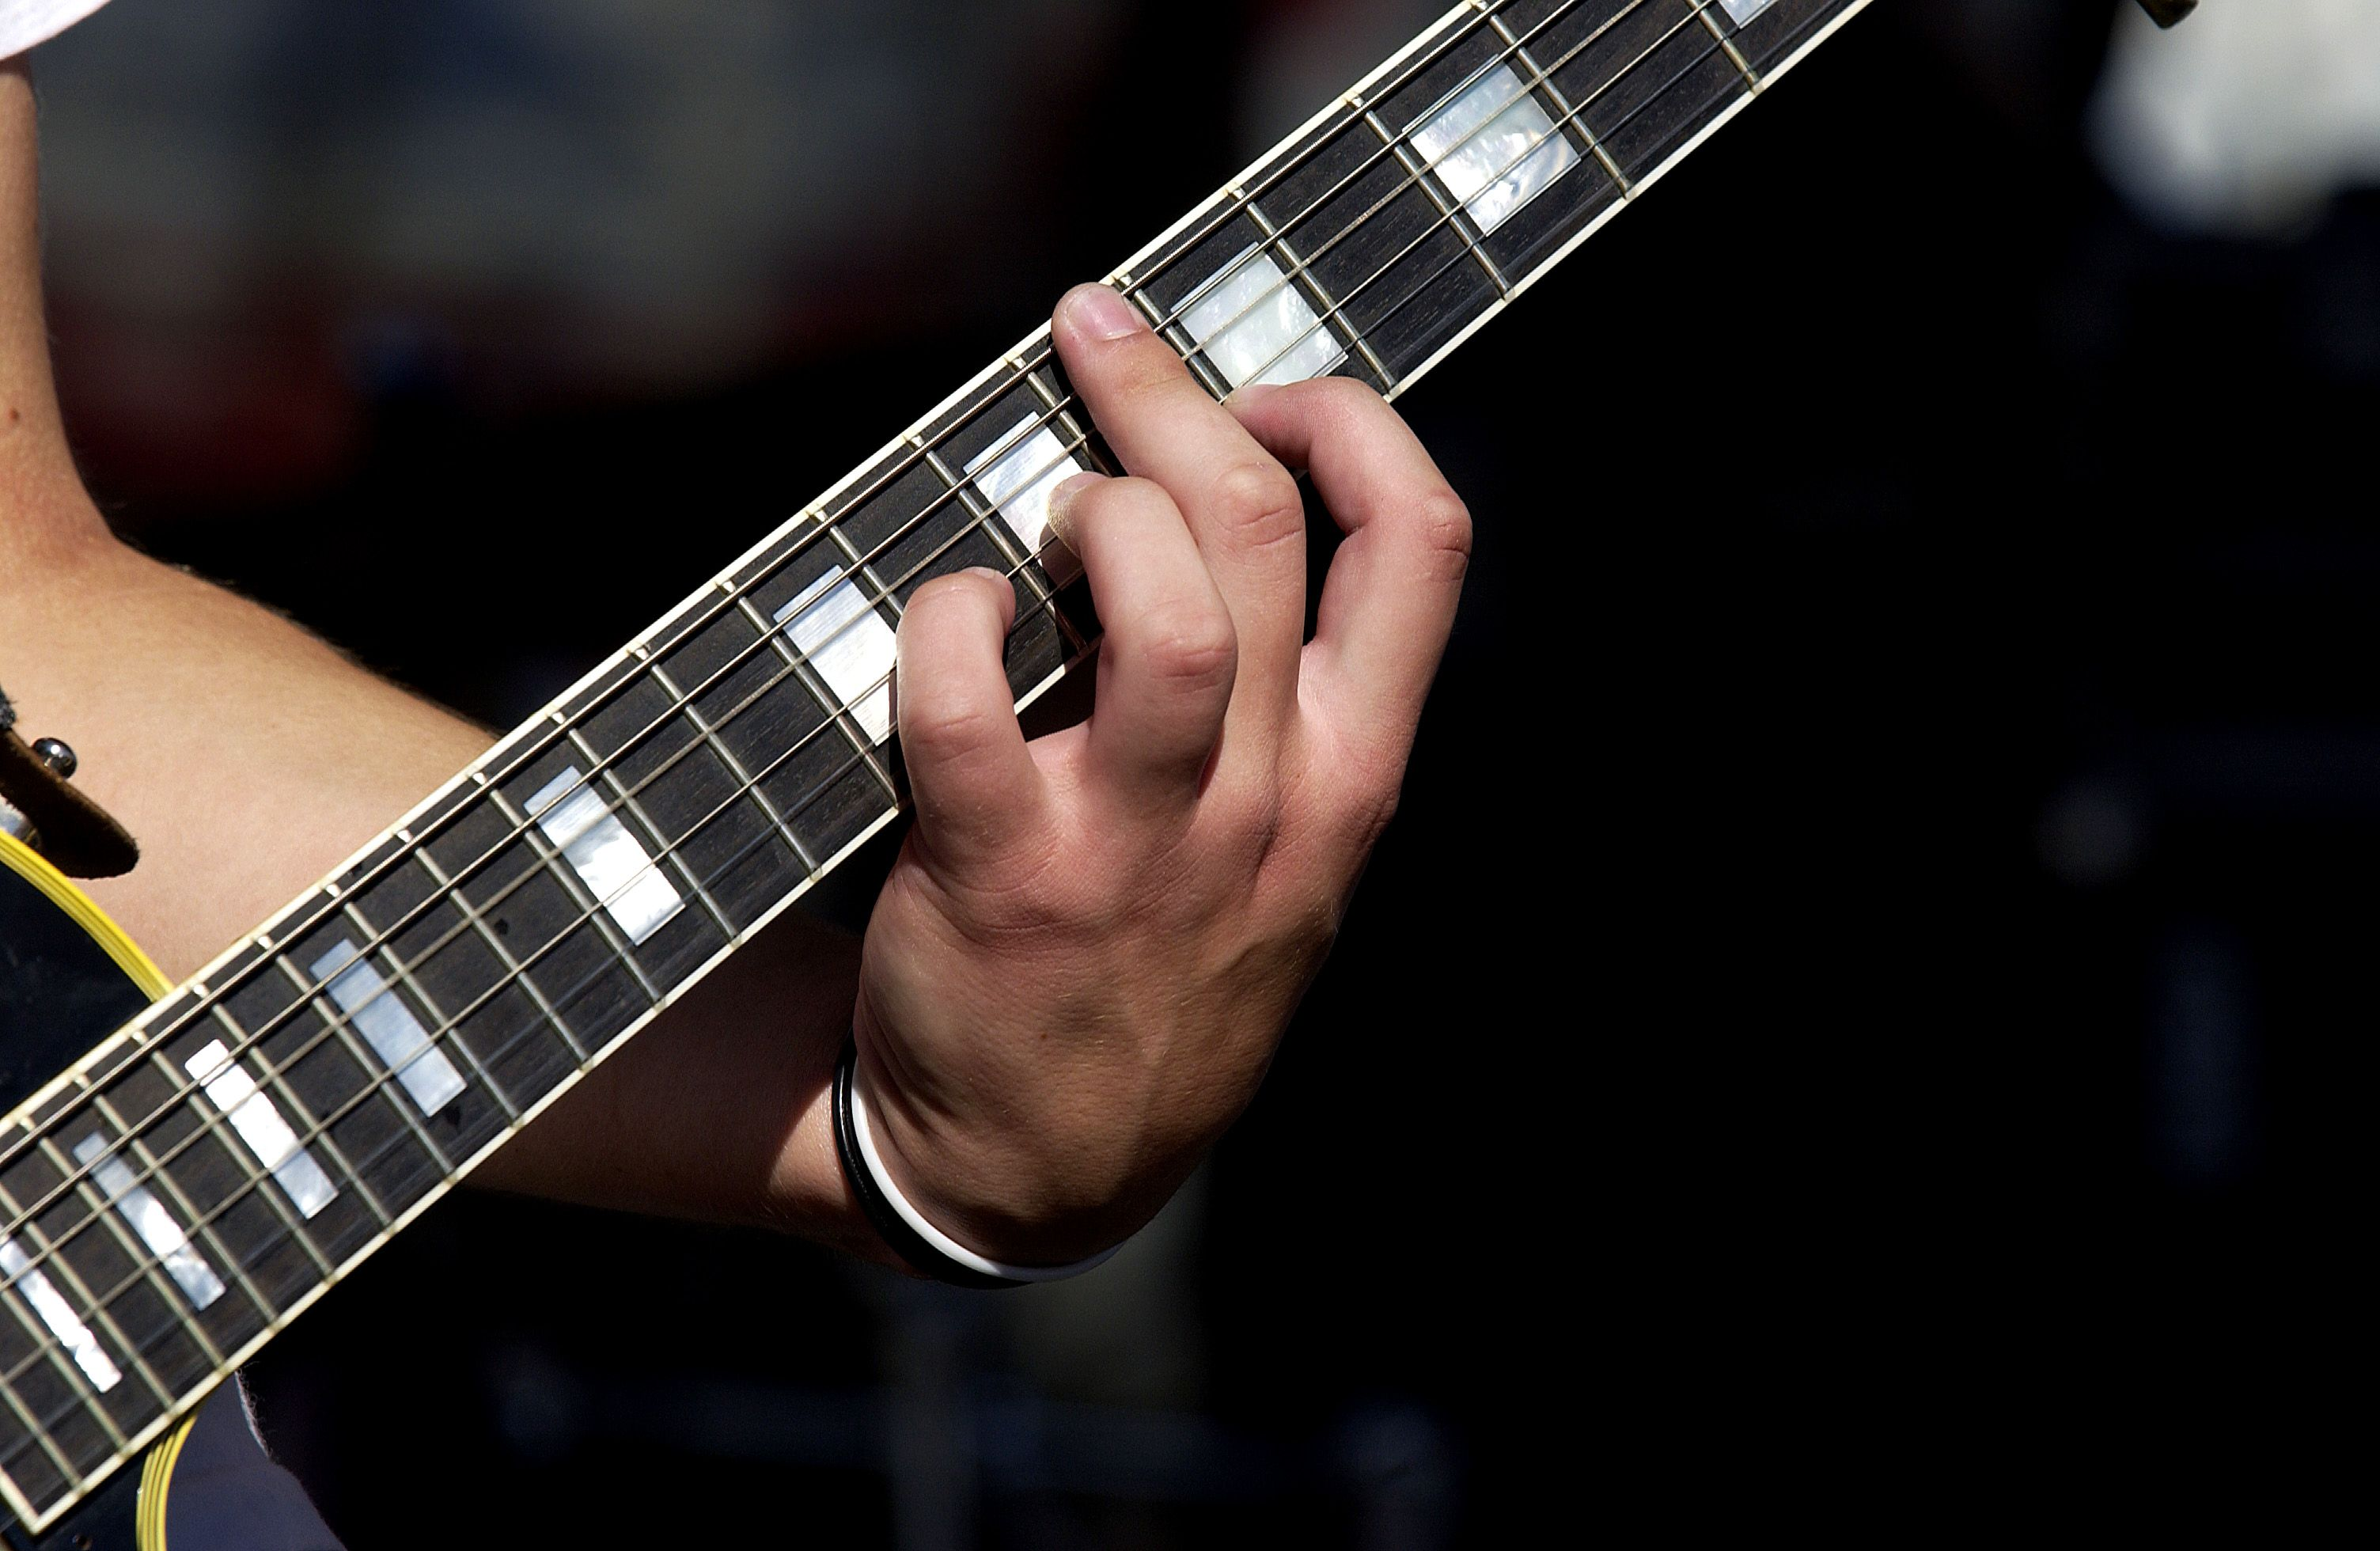 6 Ways To Improve Your Lead Guitar Playing